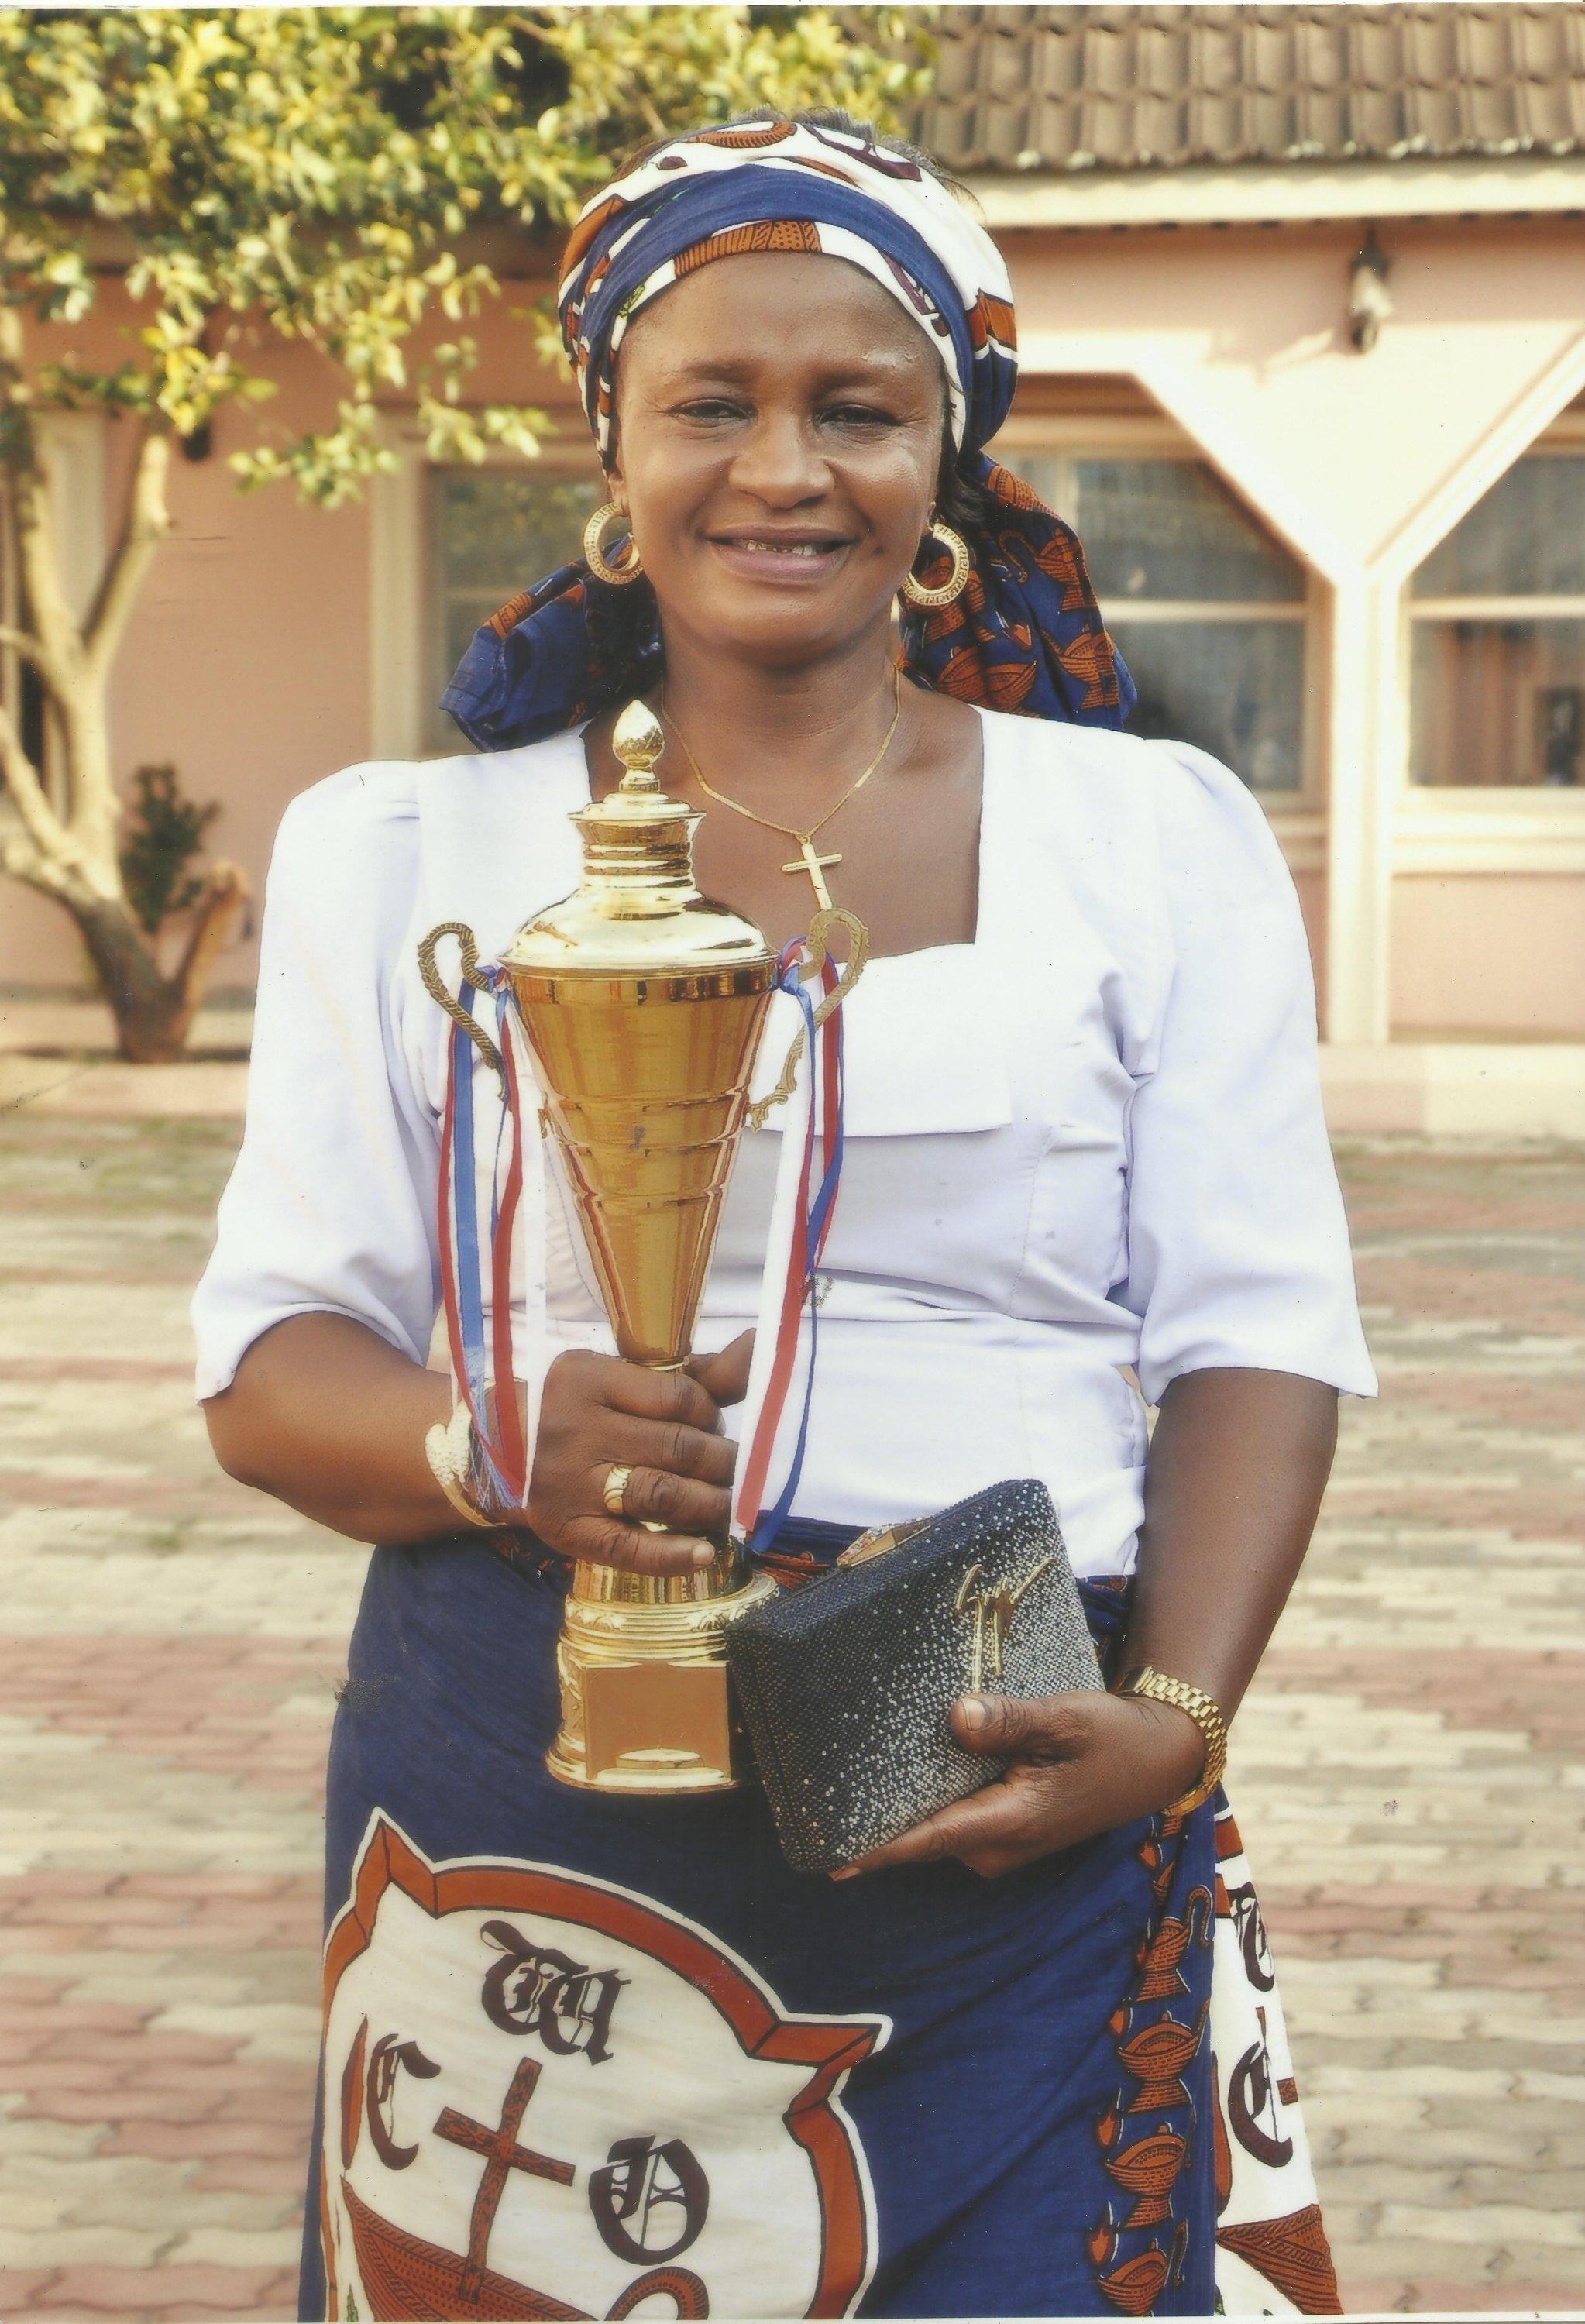 Mum in her CWO attire, holding a trophy